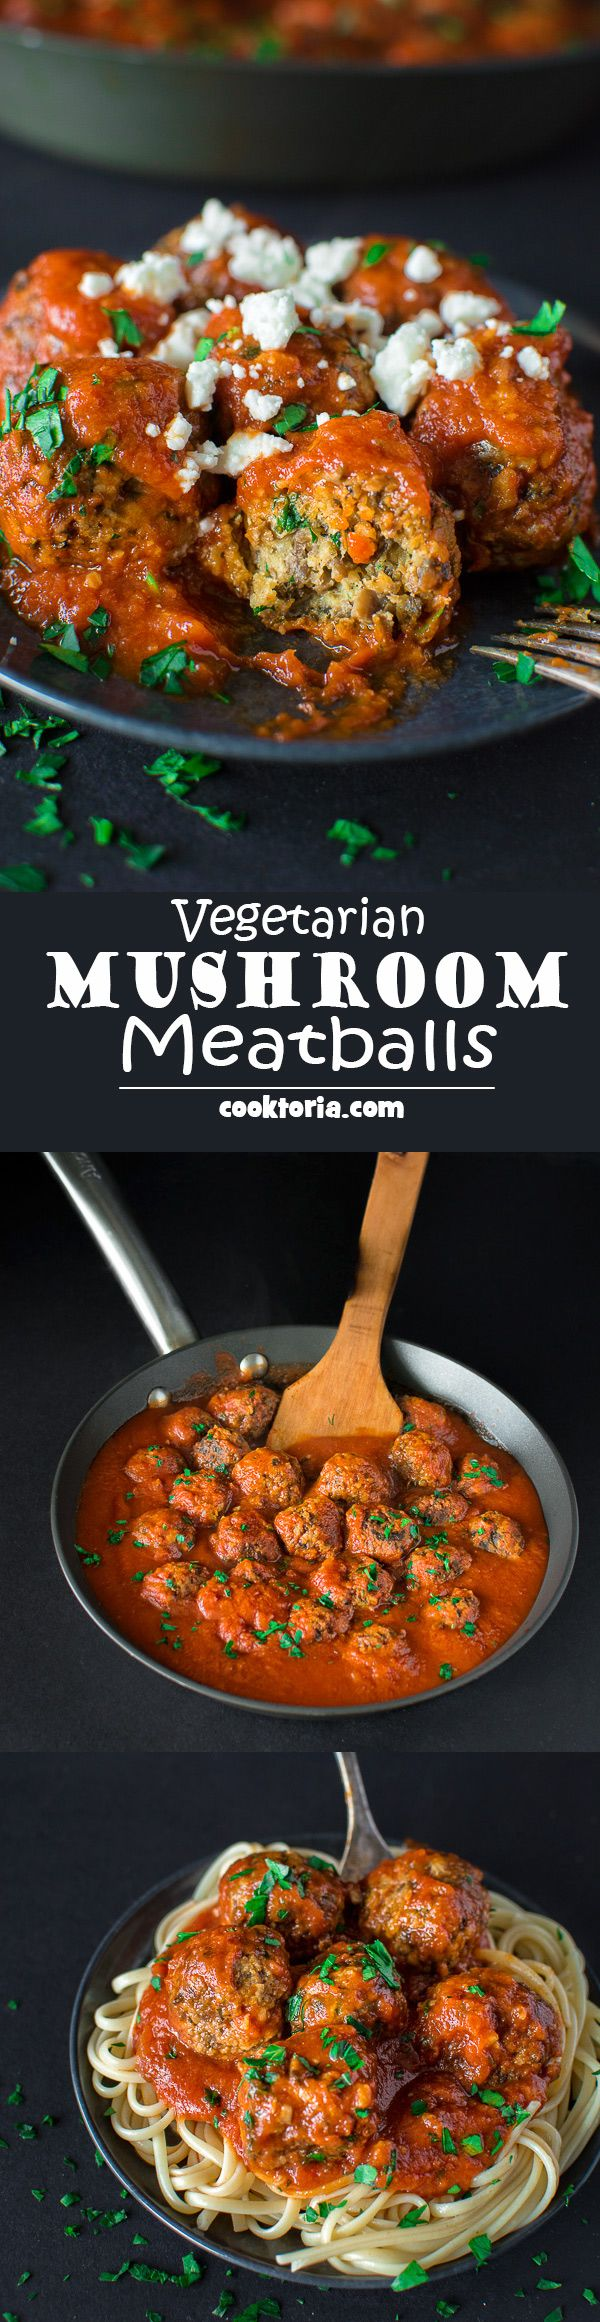 These soft and moist Mushroom Meatballs are simple to prepare and make a perfect vegetarian dinner!❤ COOKTORIA.COM use egg substitute